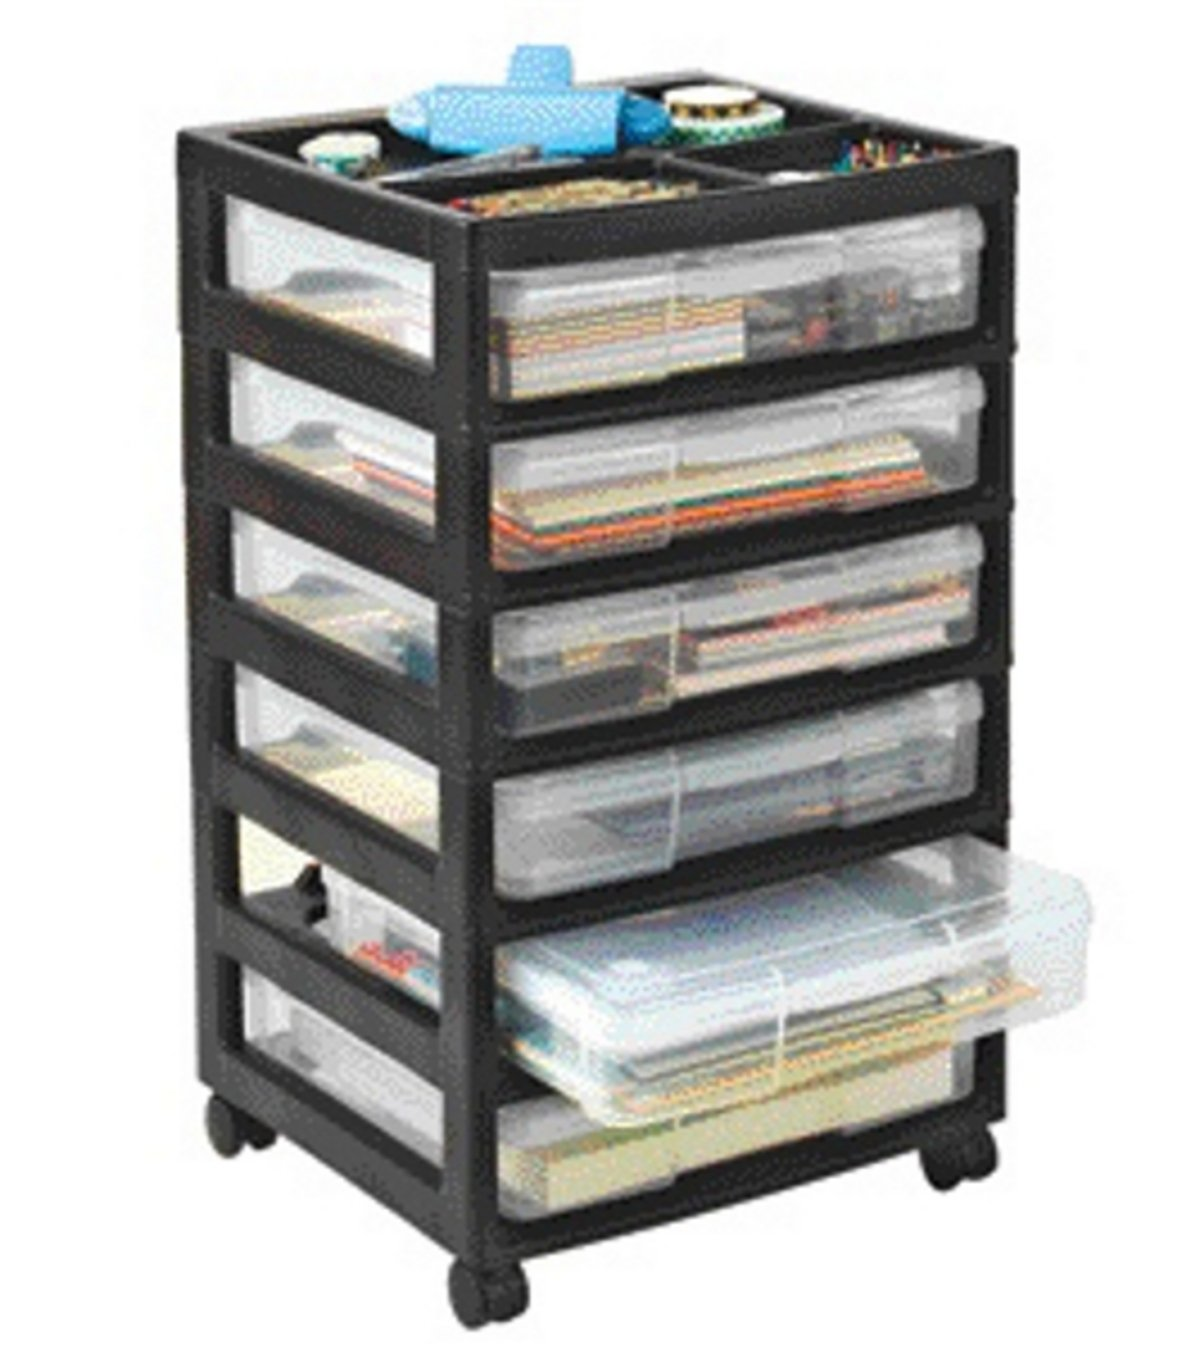 Iris 150721 Project and Scrapbook Carts, 6 Case Chest with Casters, Black IRIS USA Inc